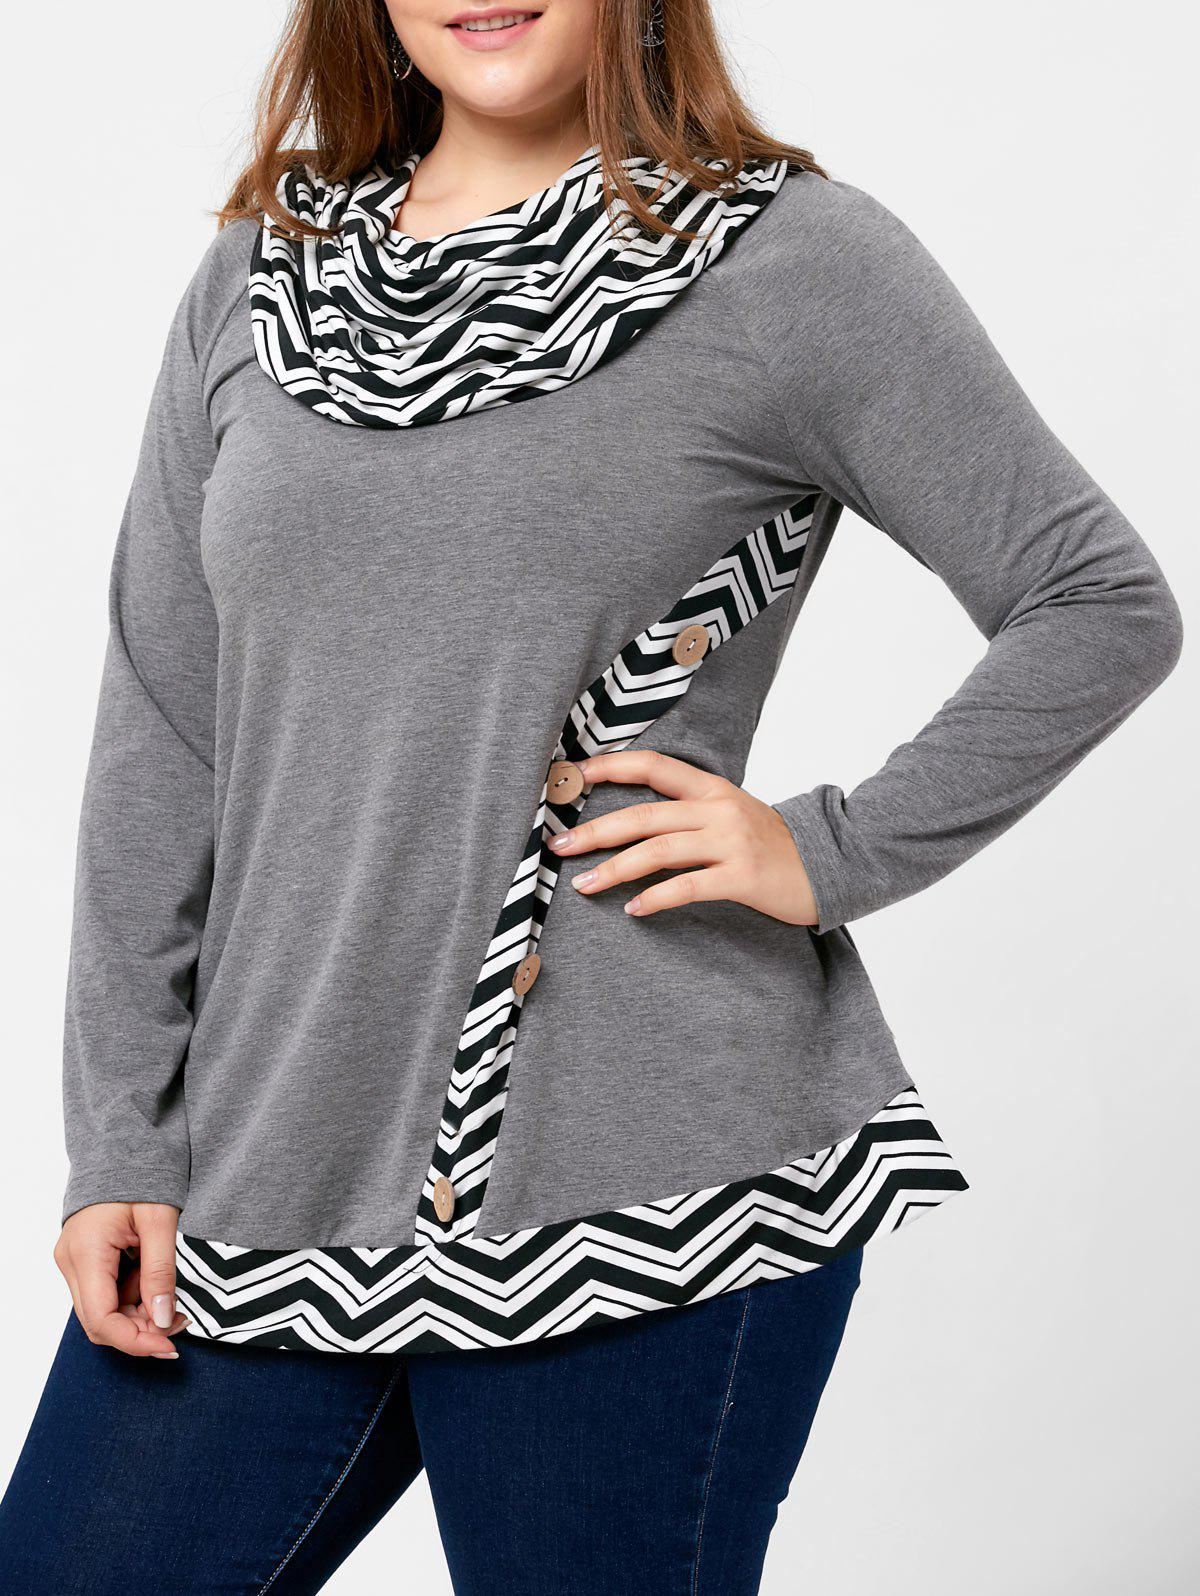 Plus Size Zigzag Pattern Cowl Neck TopWOMEN<br><br>Size: XL; Color: GRAY; Material: Polyester,Spandex; Shirt Length: Long; Sleeve Length: Full; Collar: Cowl Neck; Style: Casual; Season: Fall,Spring; Embellishment: Button; Pattern Type: Others; Weight: 0.3100kg; Package Contents: 1 x Top;